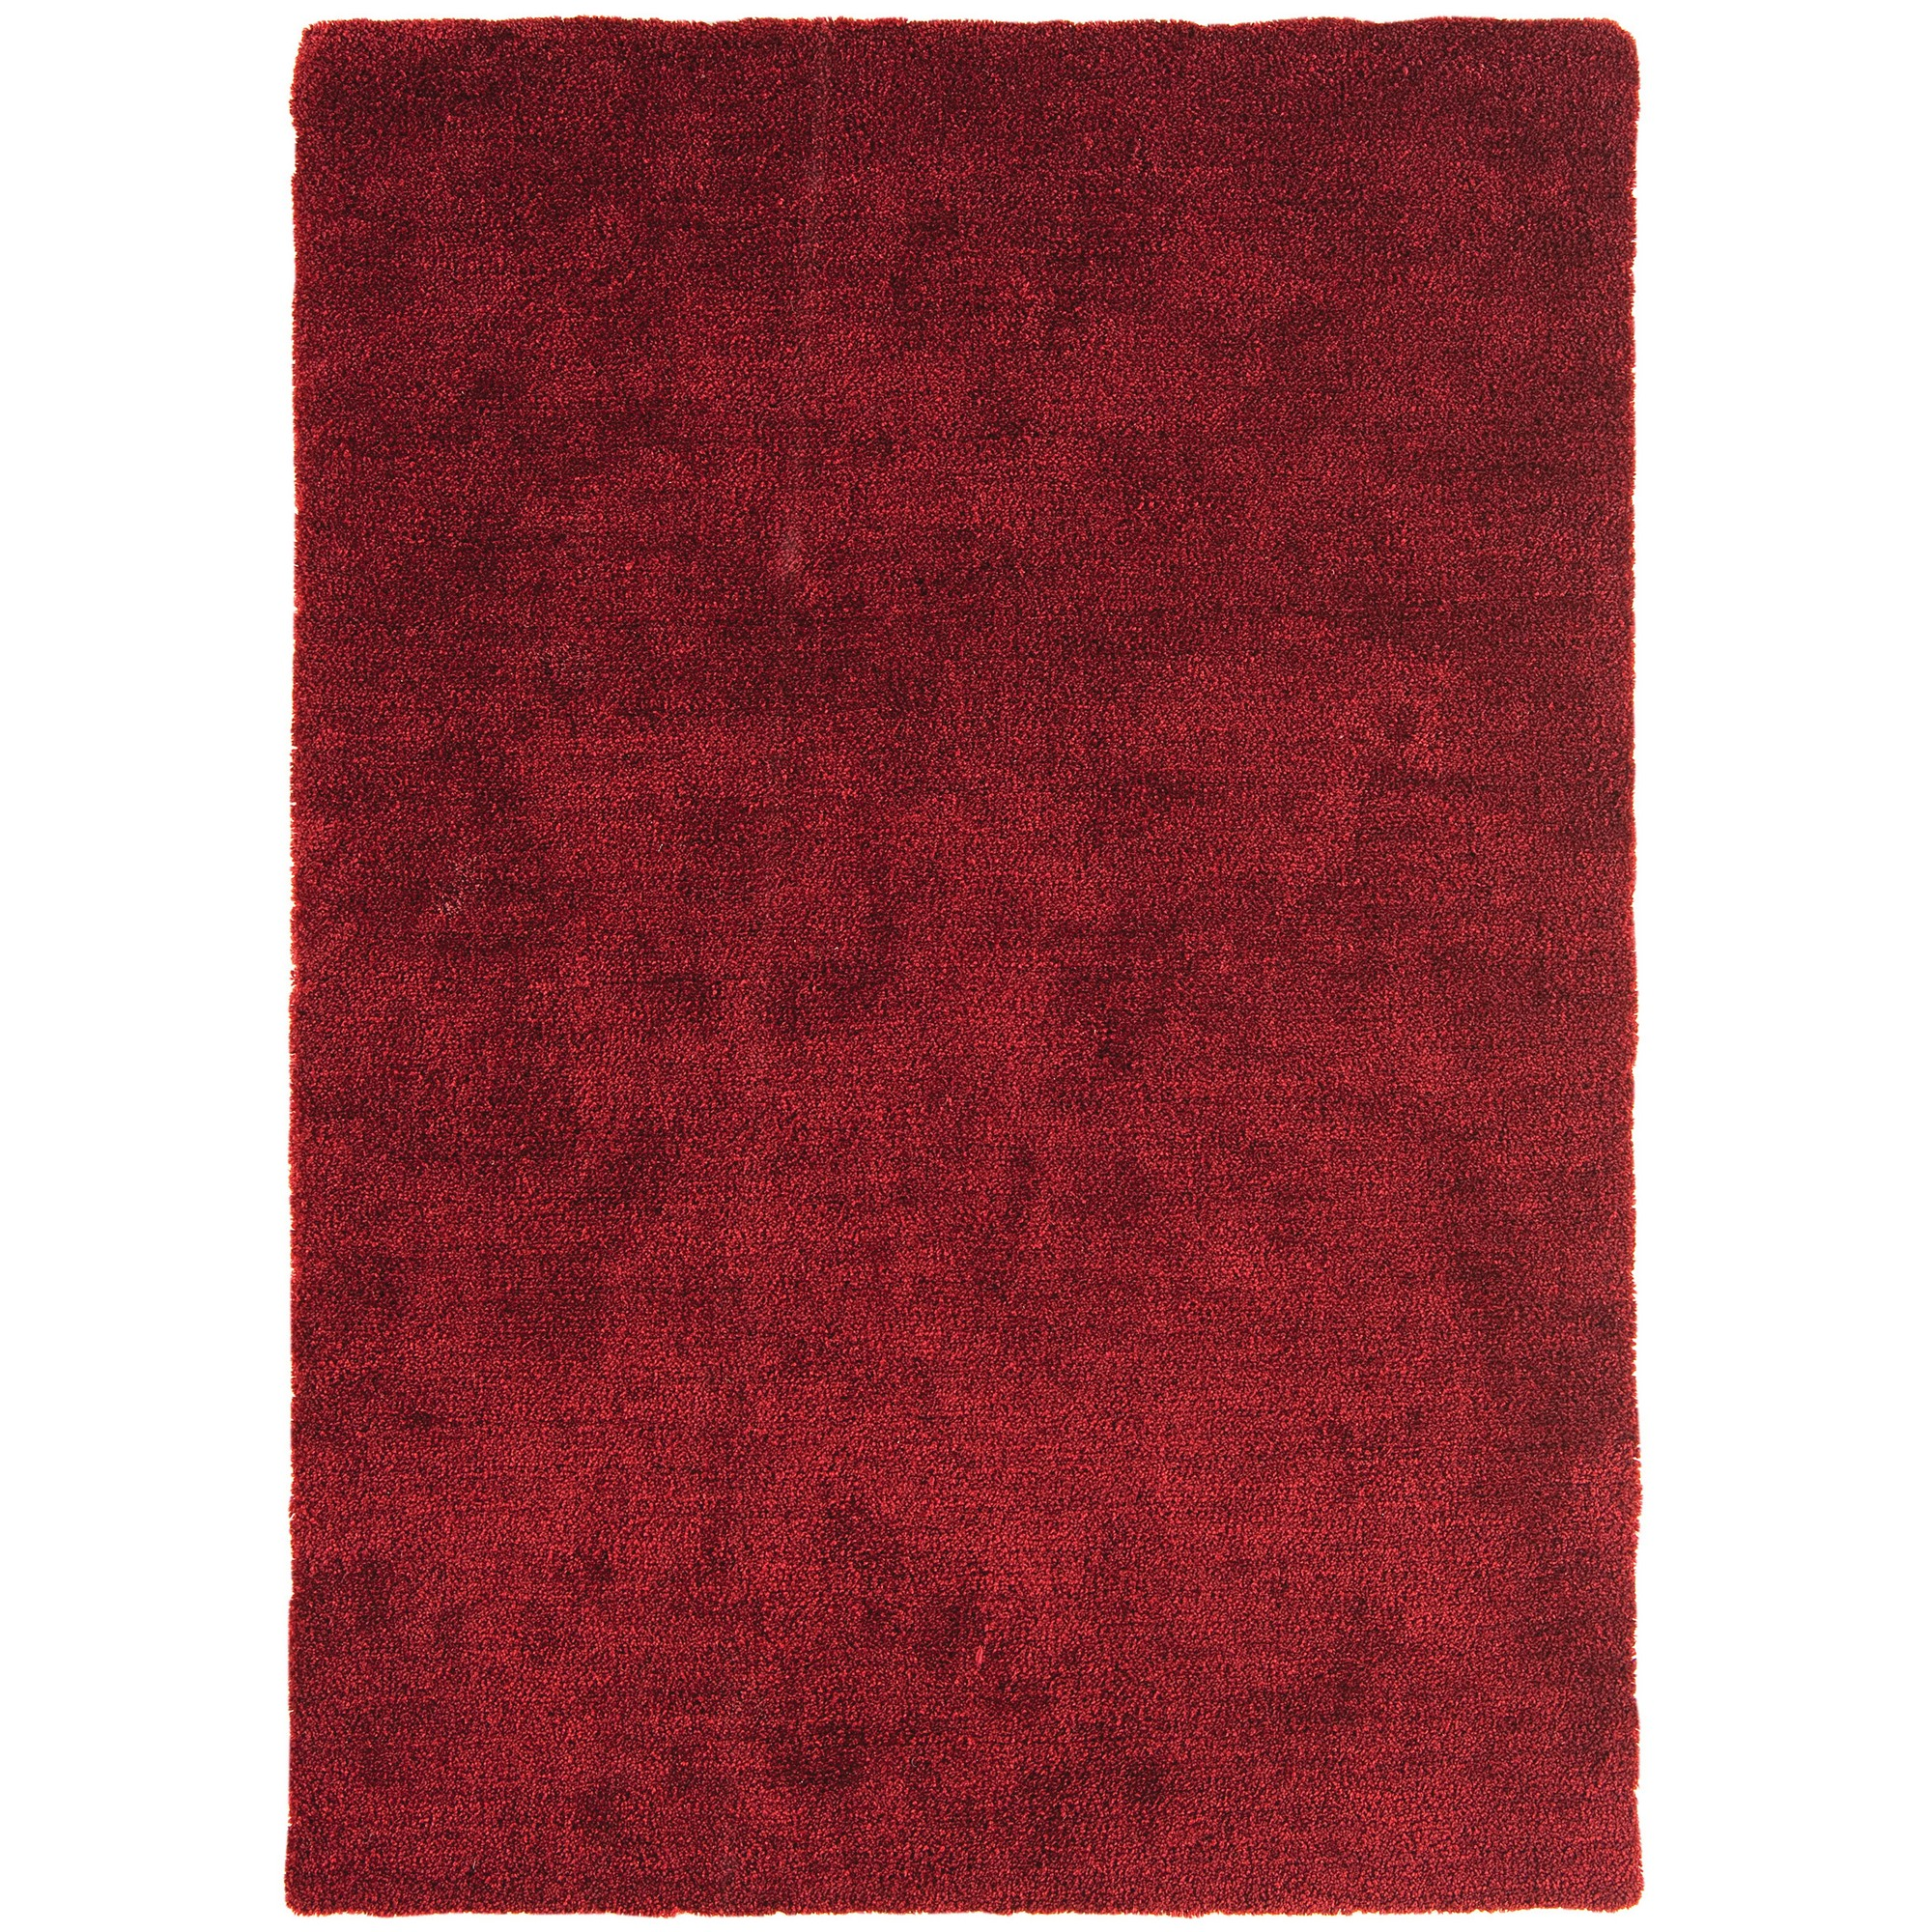 Tula Plain Rugs in Red